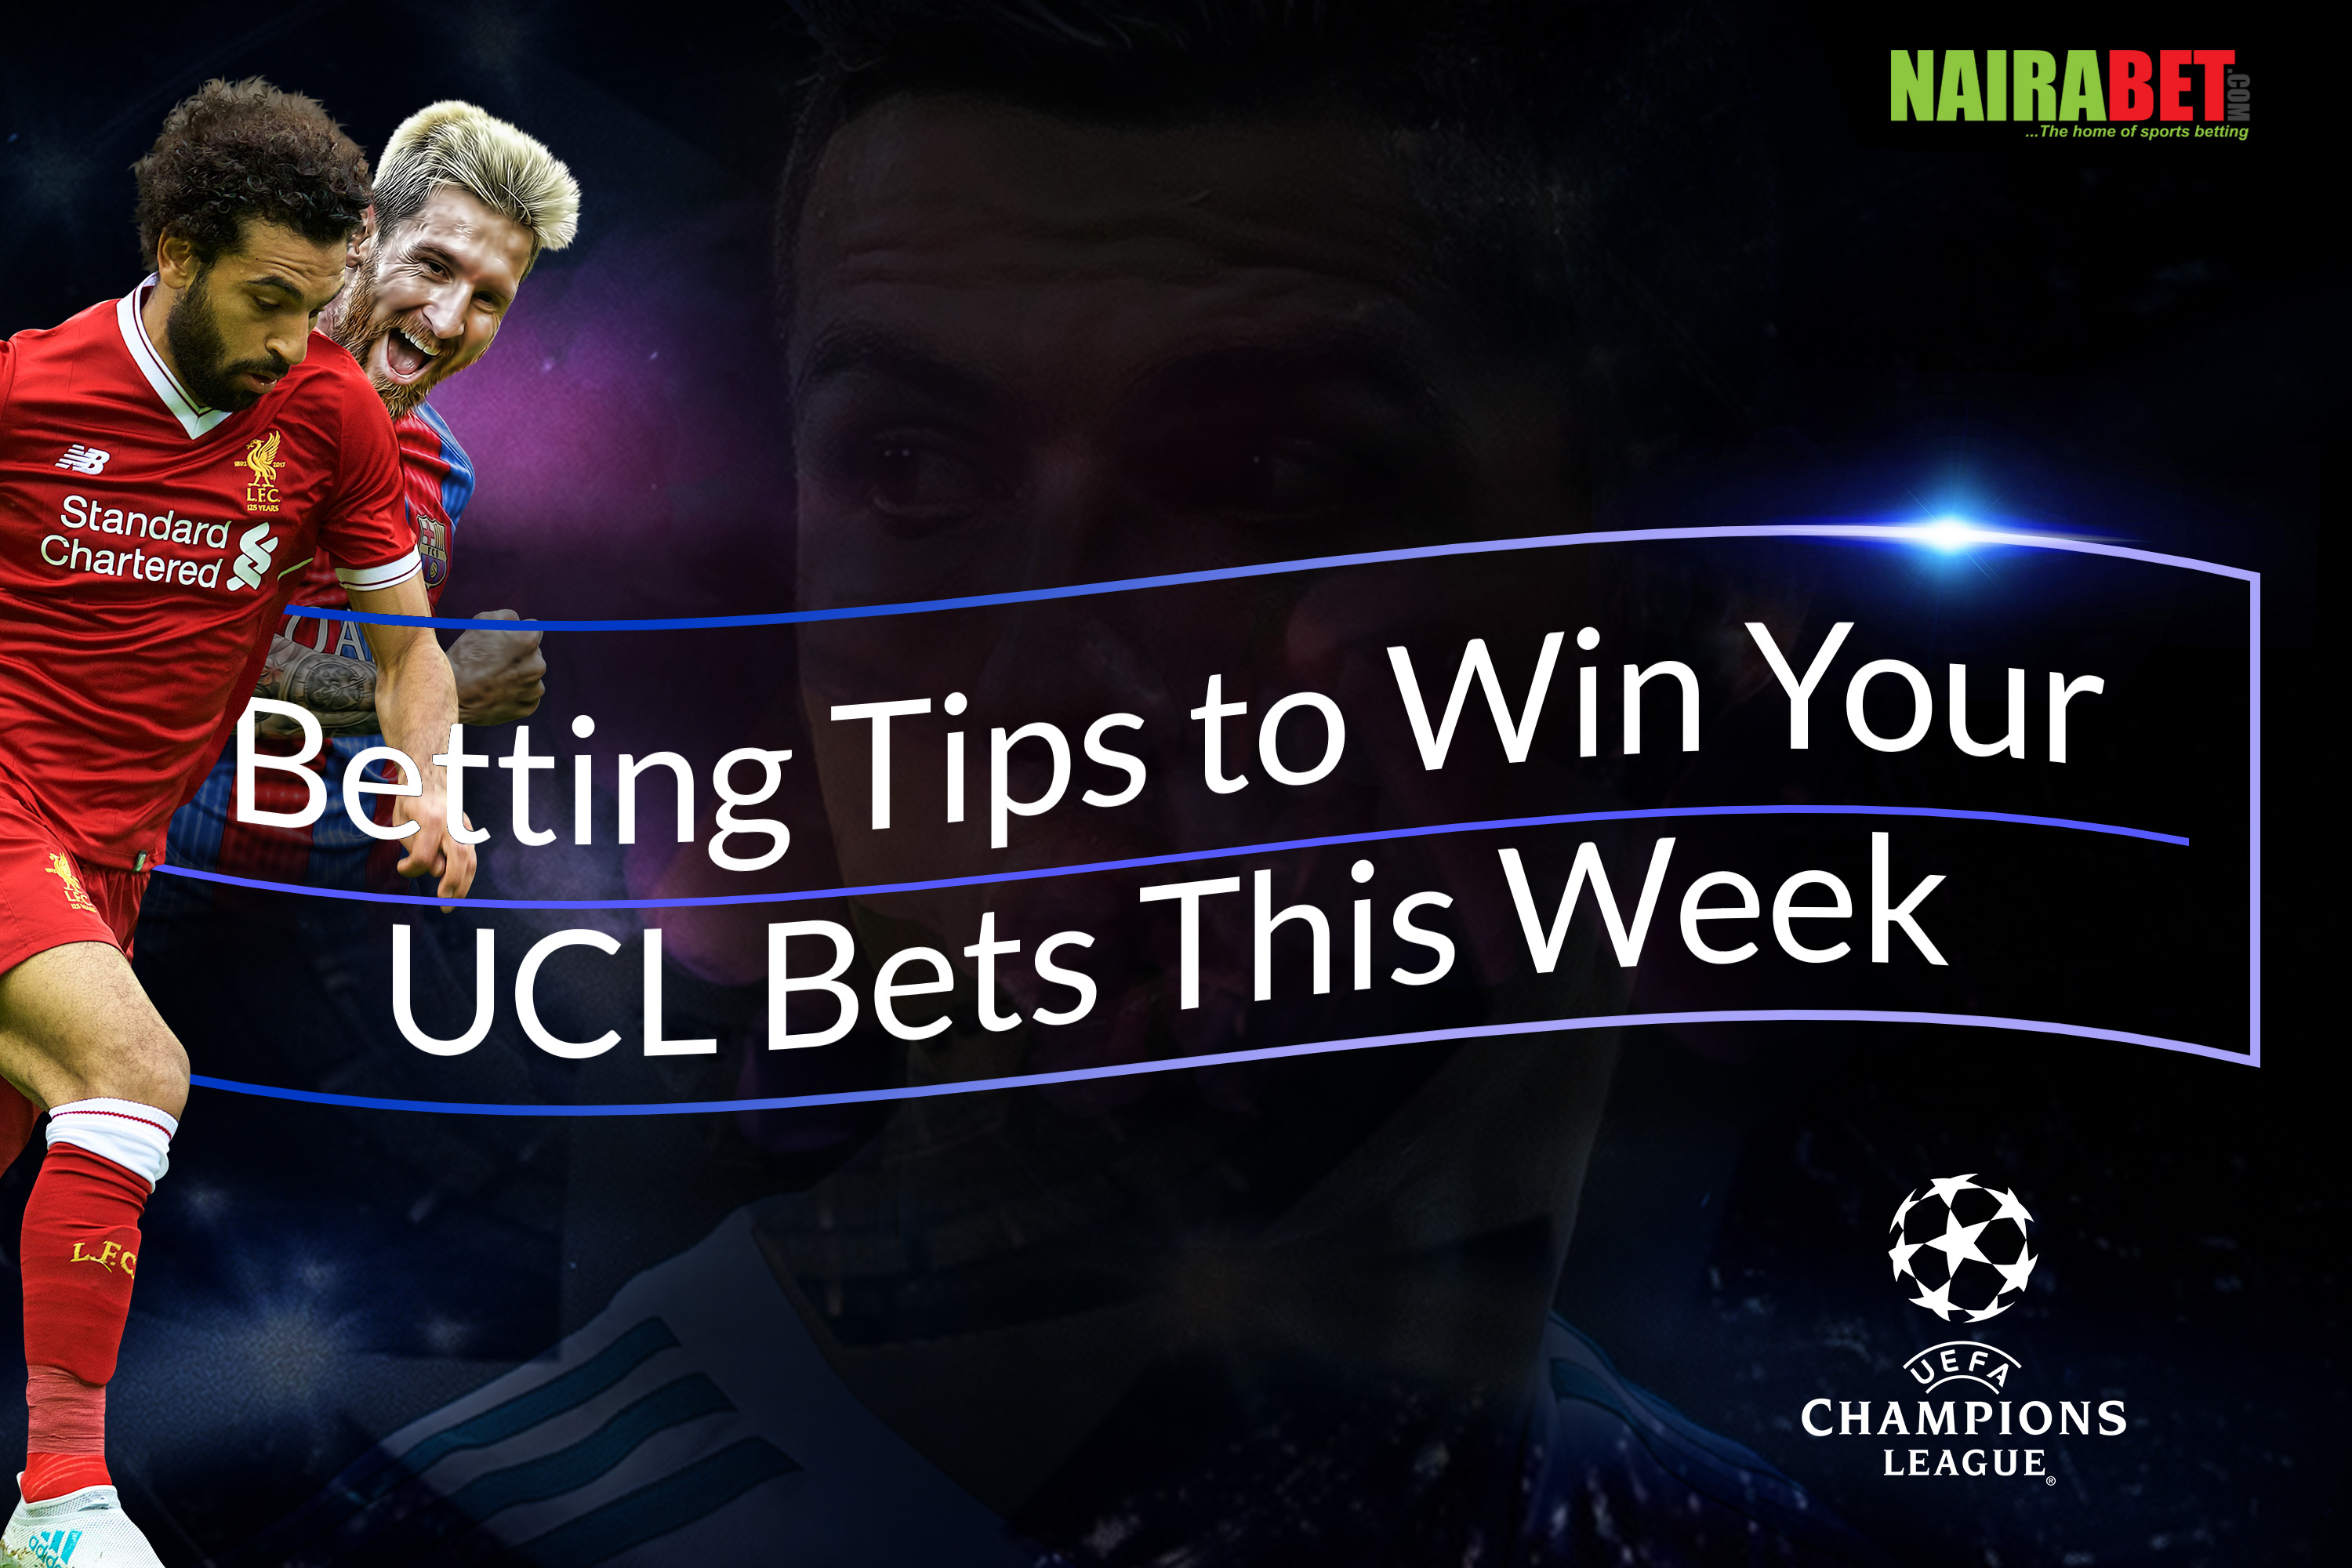 4 Betting Tips to Win Your UCL Bets This Week - Welcome To The